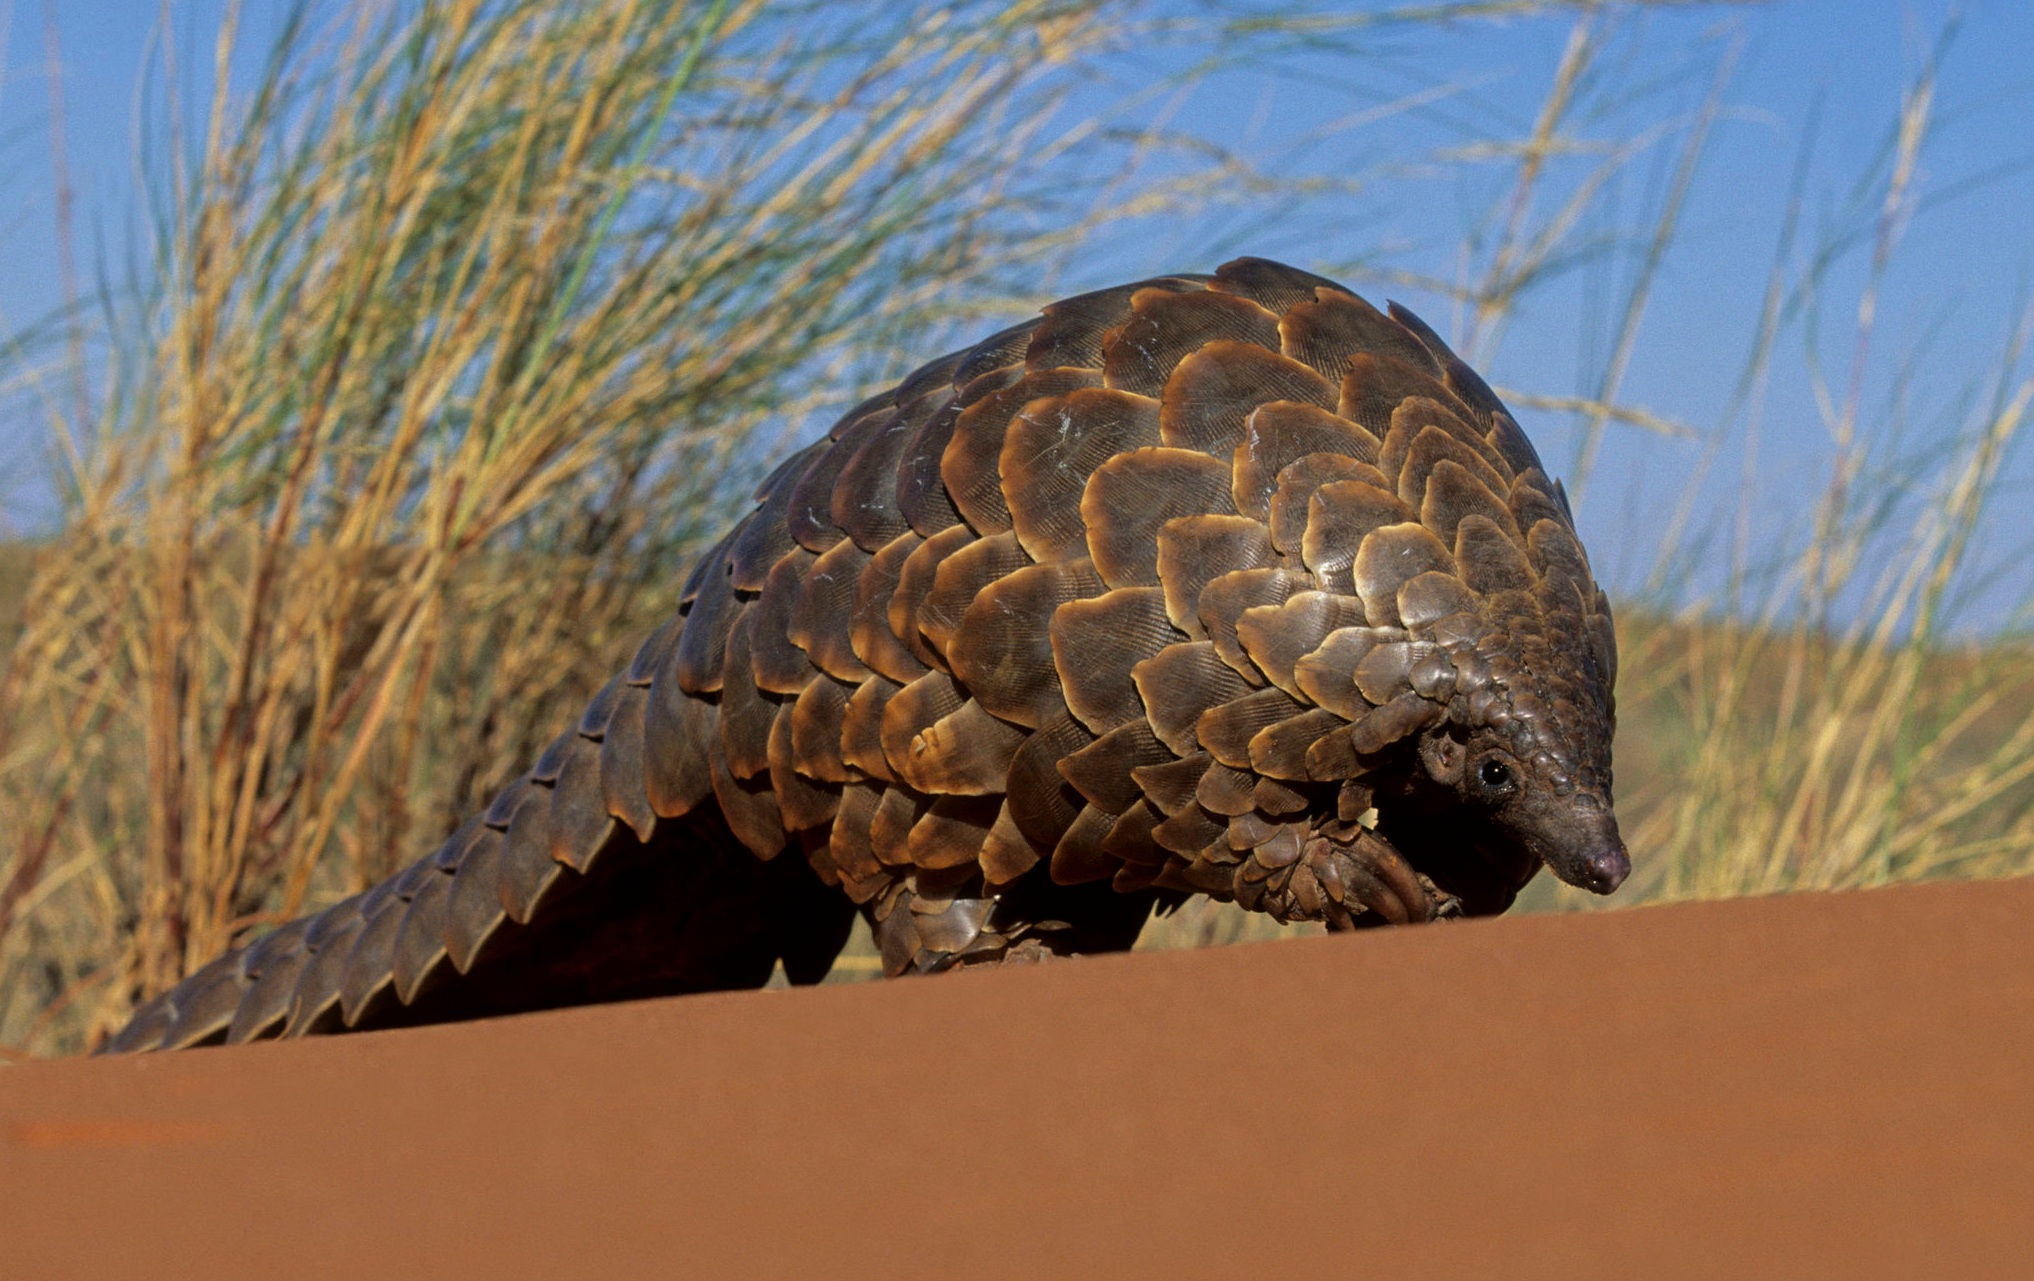 What is a pangolin? - Pangolins are insect-eating mammals that are covered in tough, overlapping scales. There are eight pangolin species living across Asia and Africa.